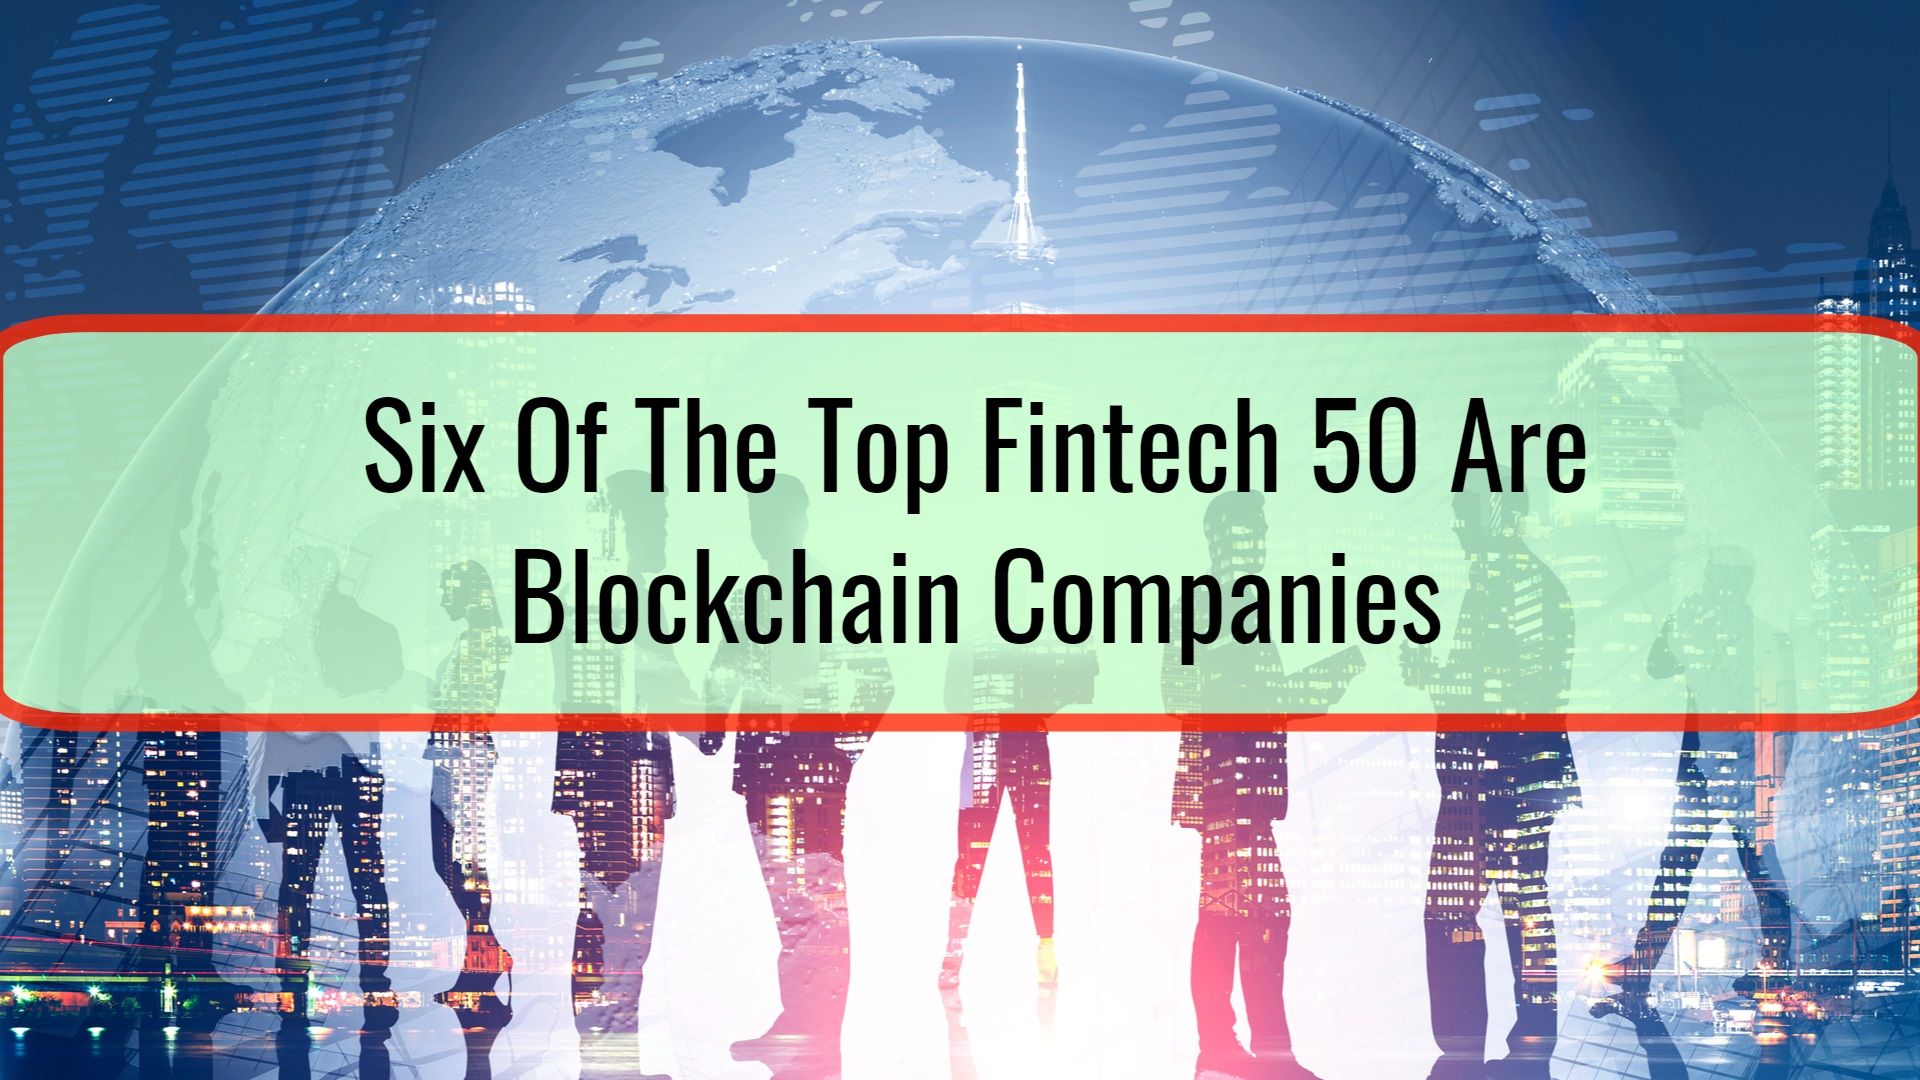 Six Of The Top Fintech 50 Are Blockchain Companies